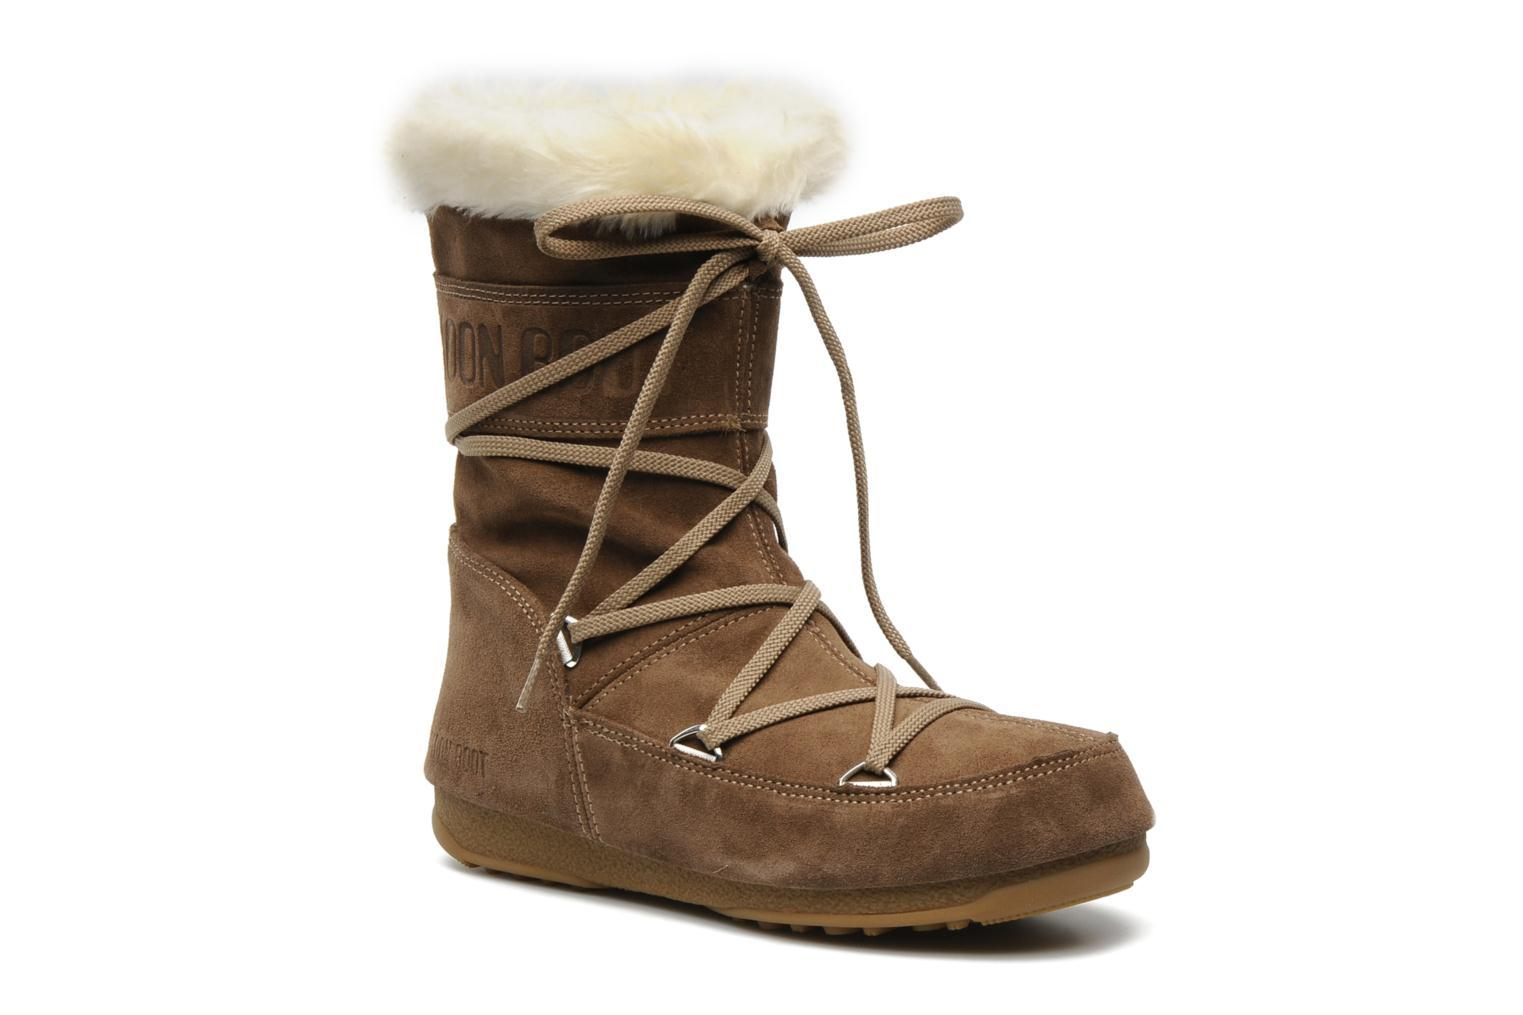 35d7f2d87796c Foto Boots y Botines Moon Boot Butter mid Mujer foto 378530